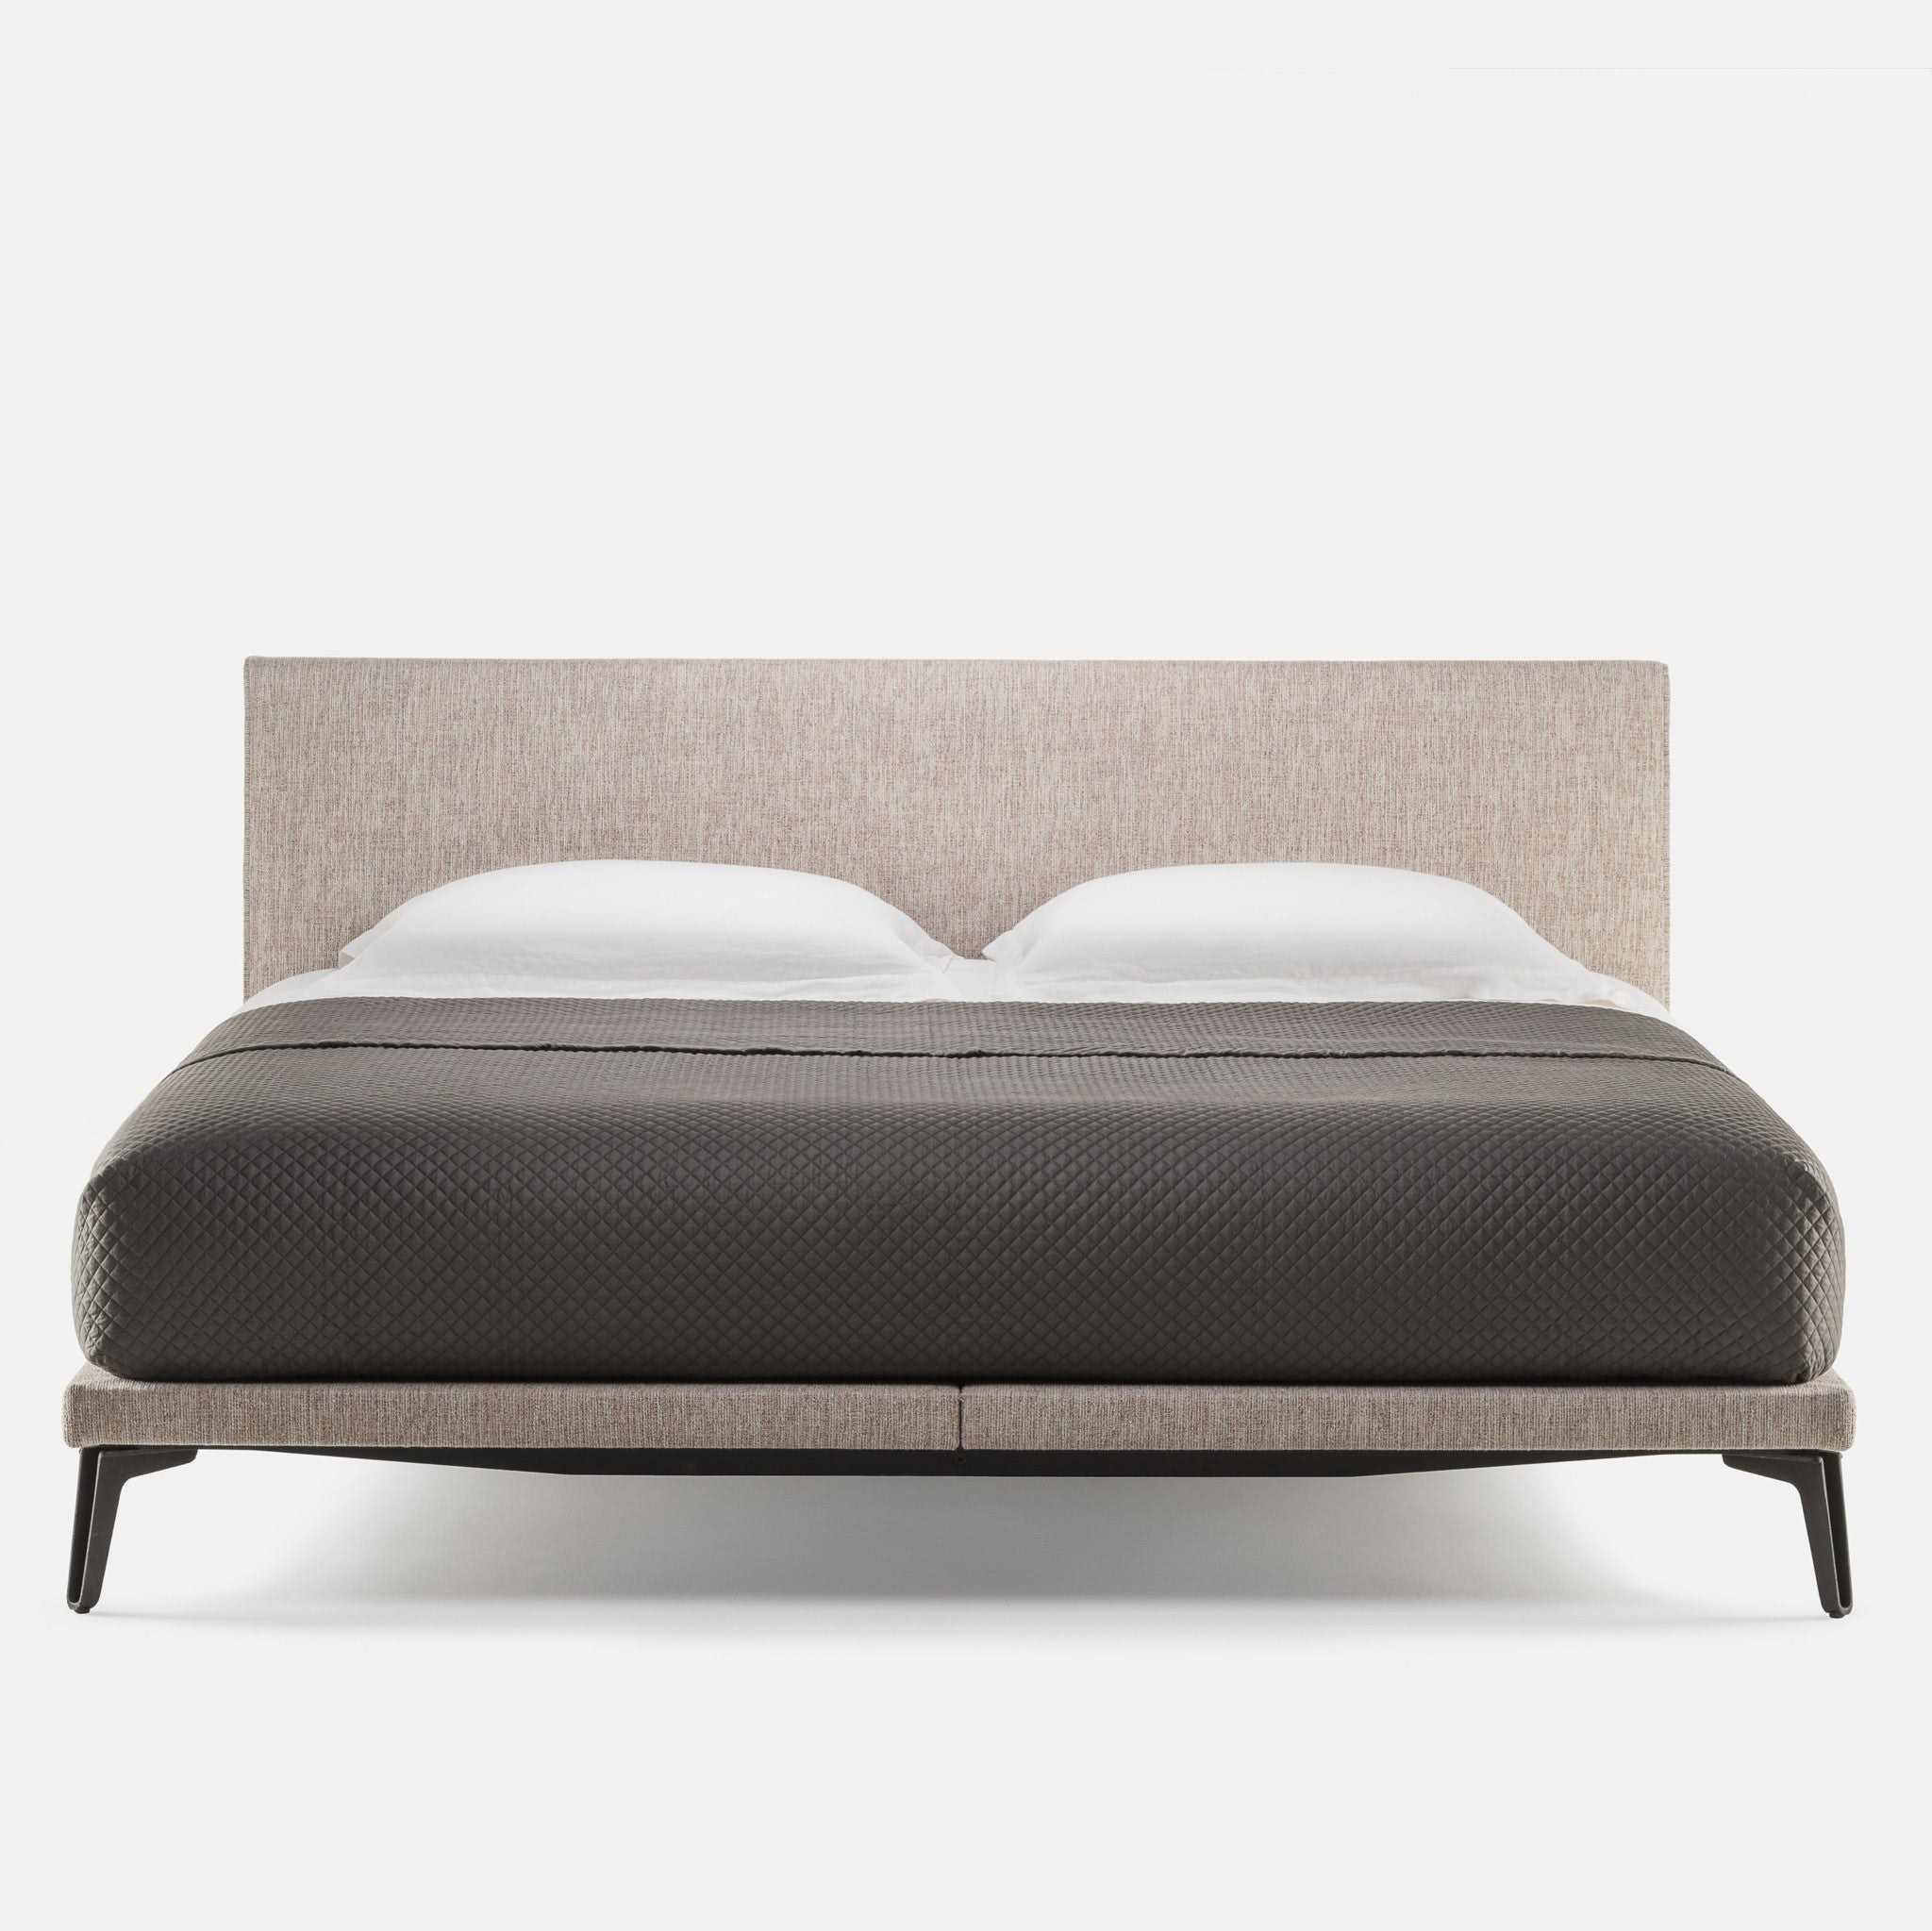 McQueen Bed by Matthew Hilton